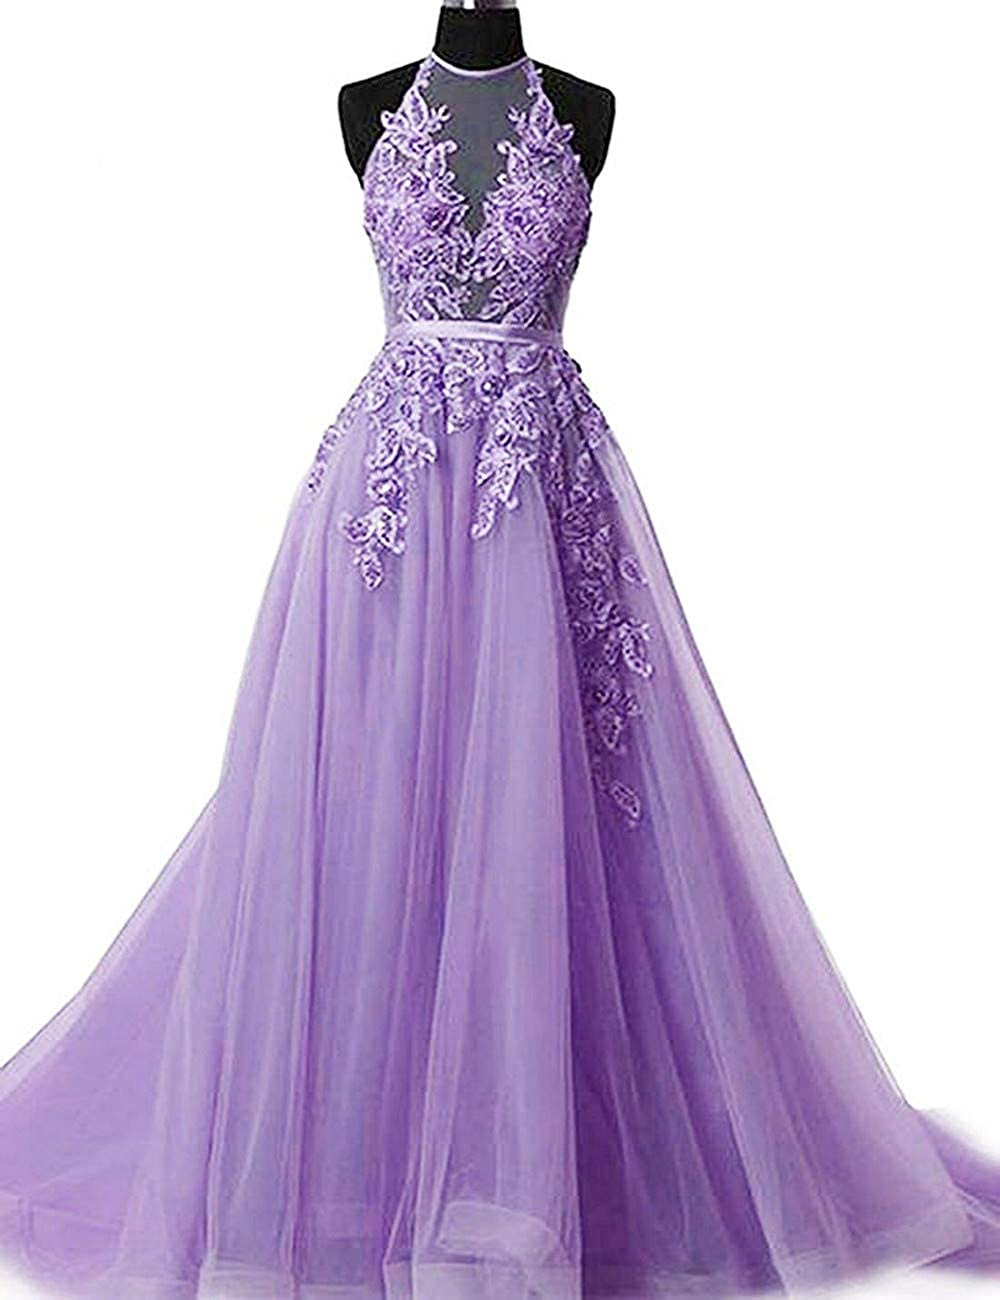 Lavender Liaoye Women's Halter Lace Prom Dresses Long Formal Party Gown 2019 Backless Evening Dress for Weddings